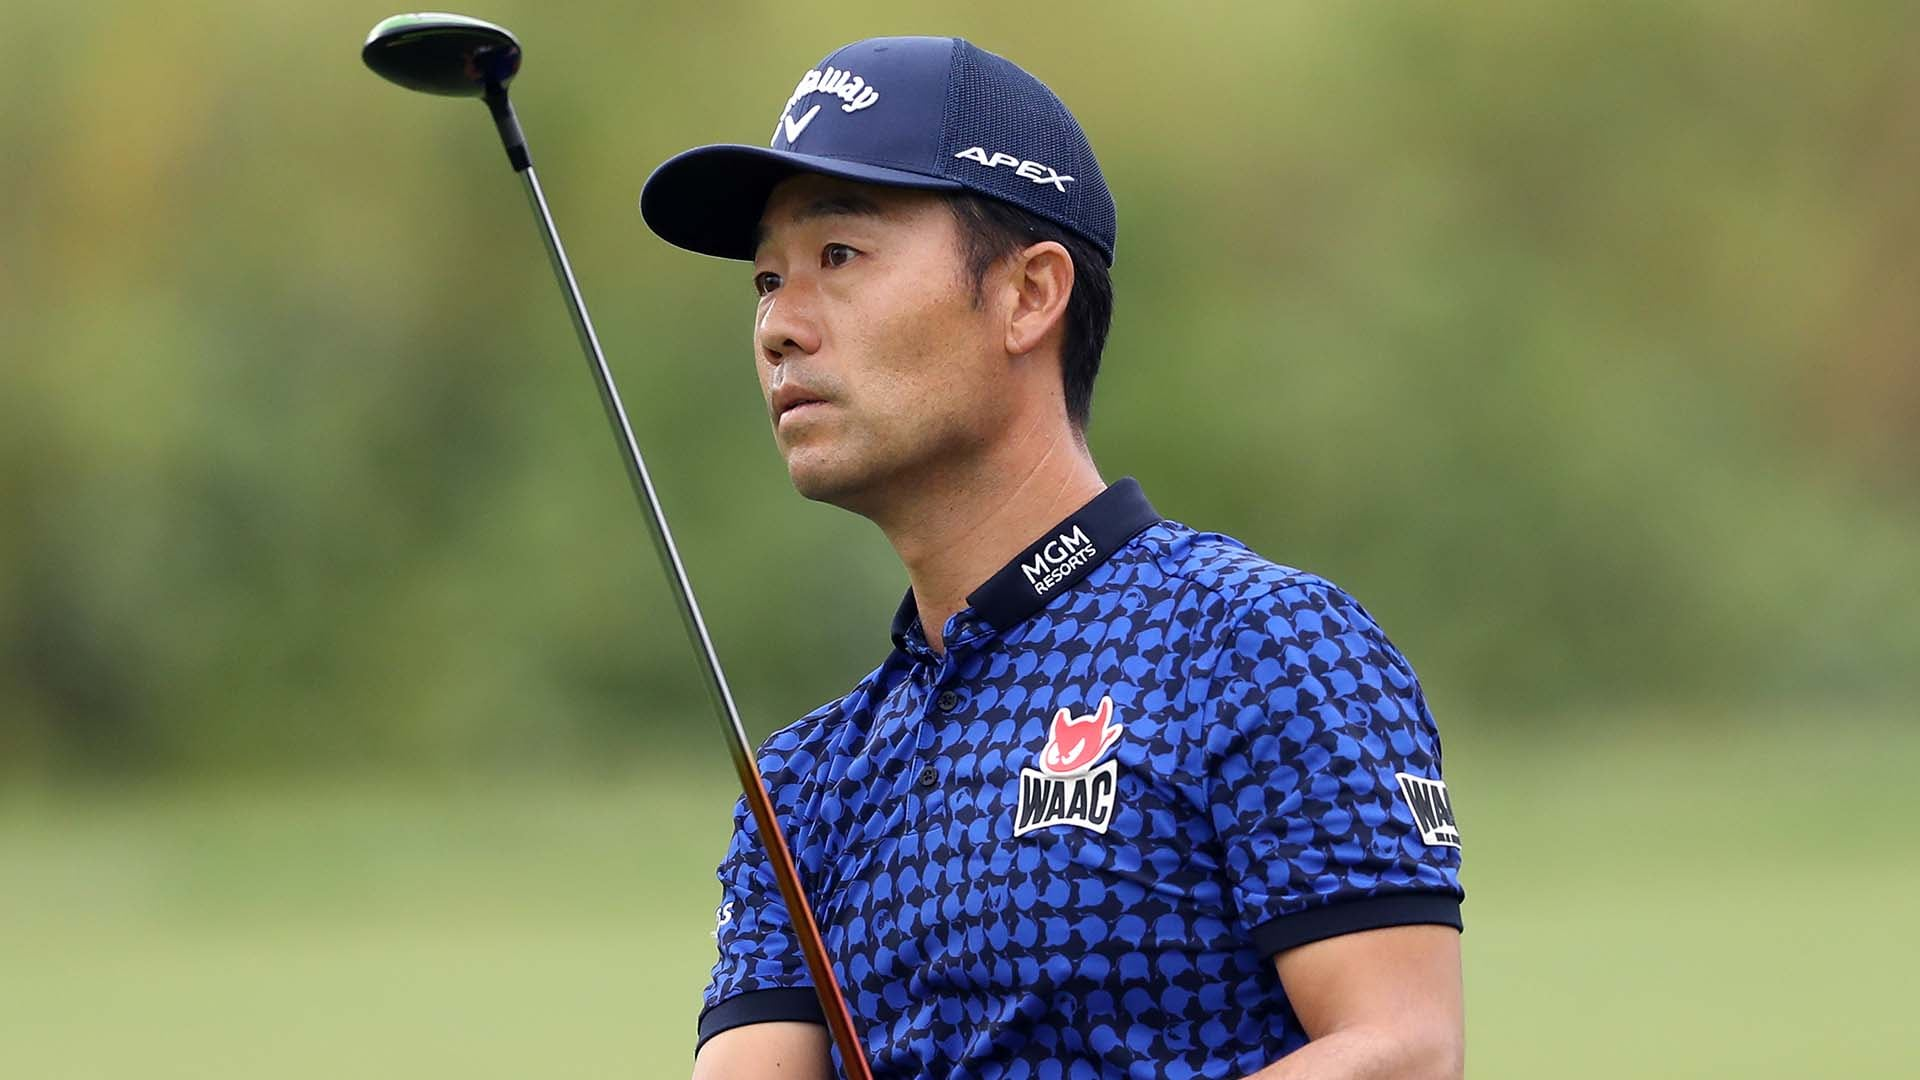 Kevin Na on Bio Kim's suspension: 'Three years is ridiculous' | Golf Channel